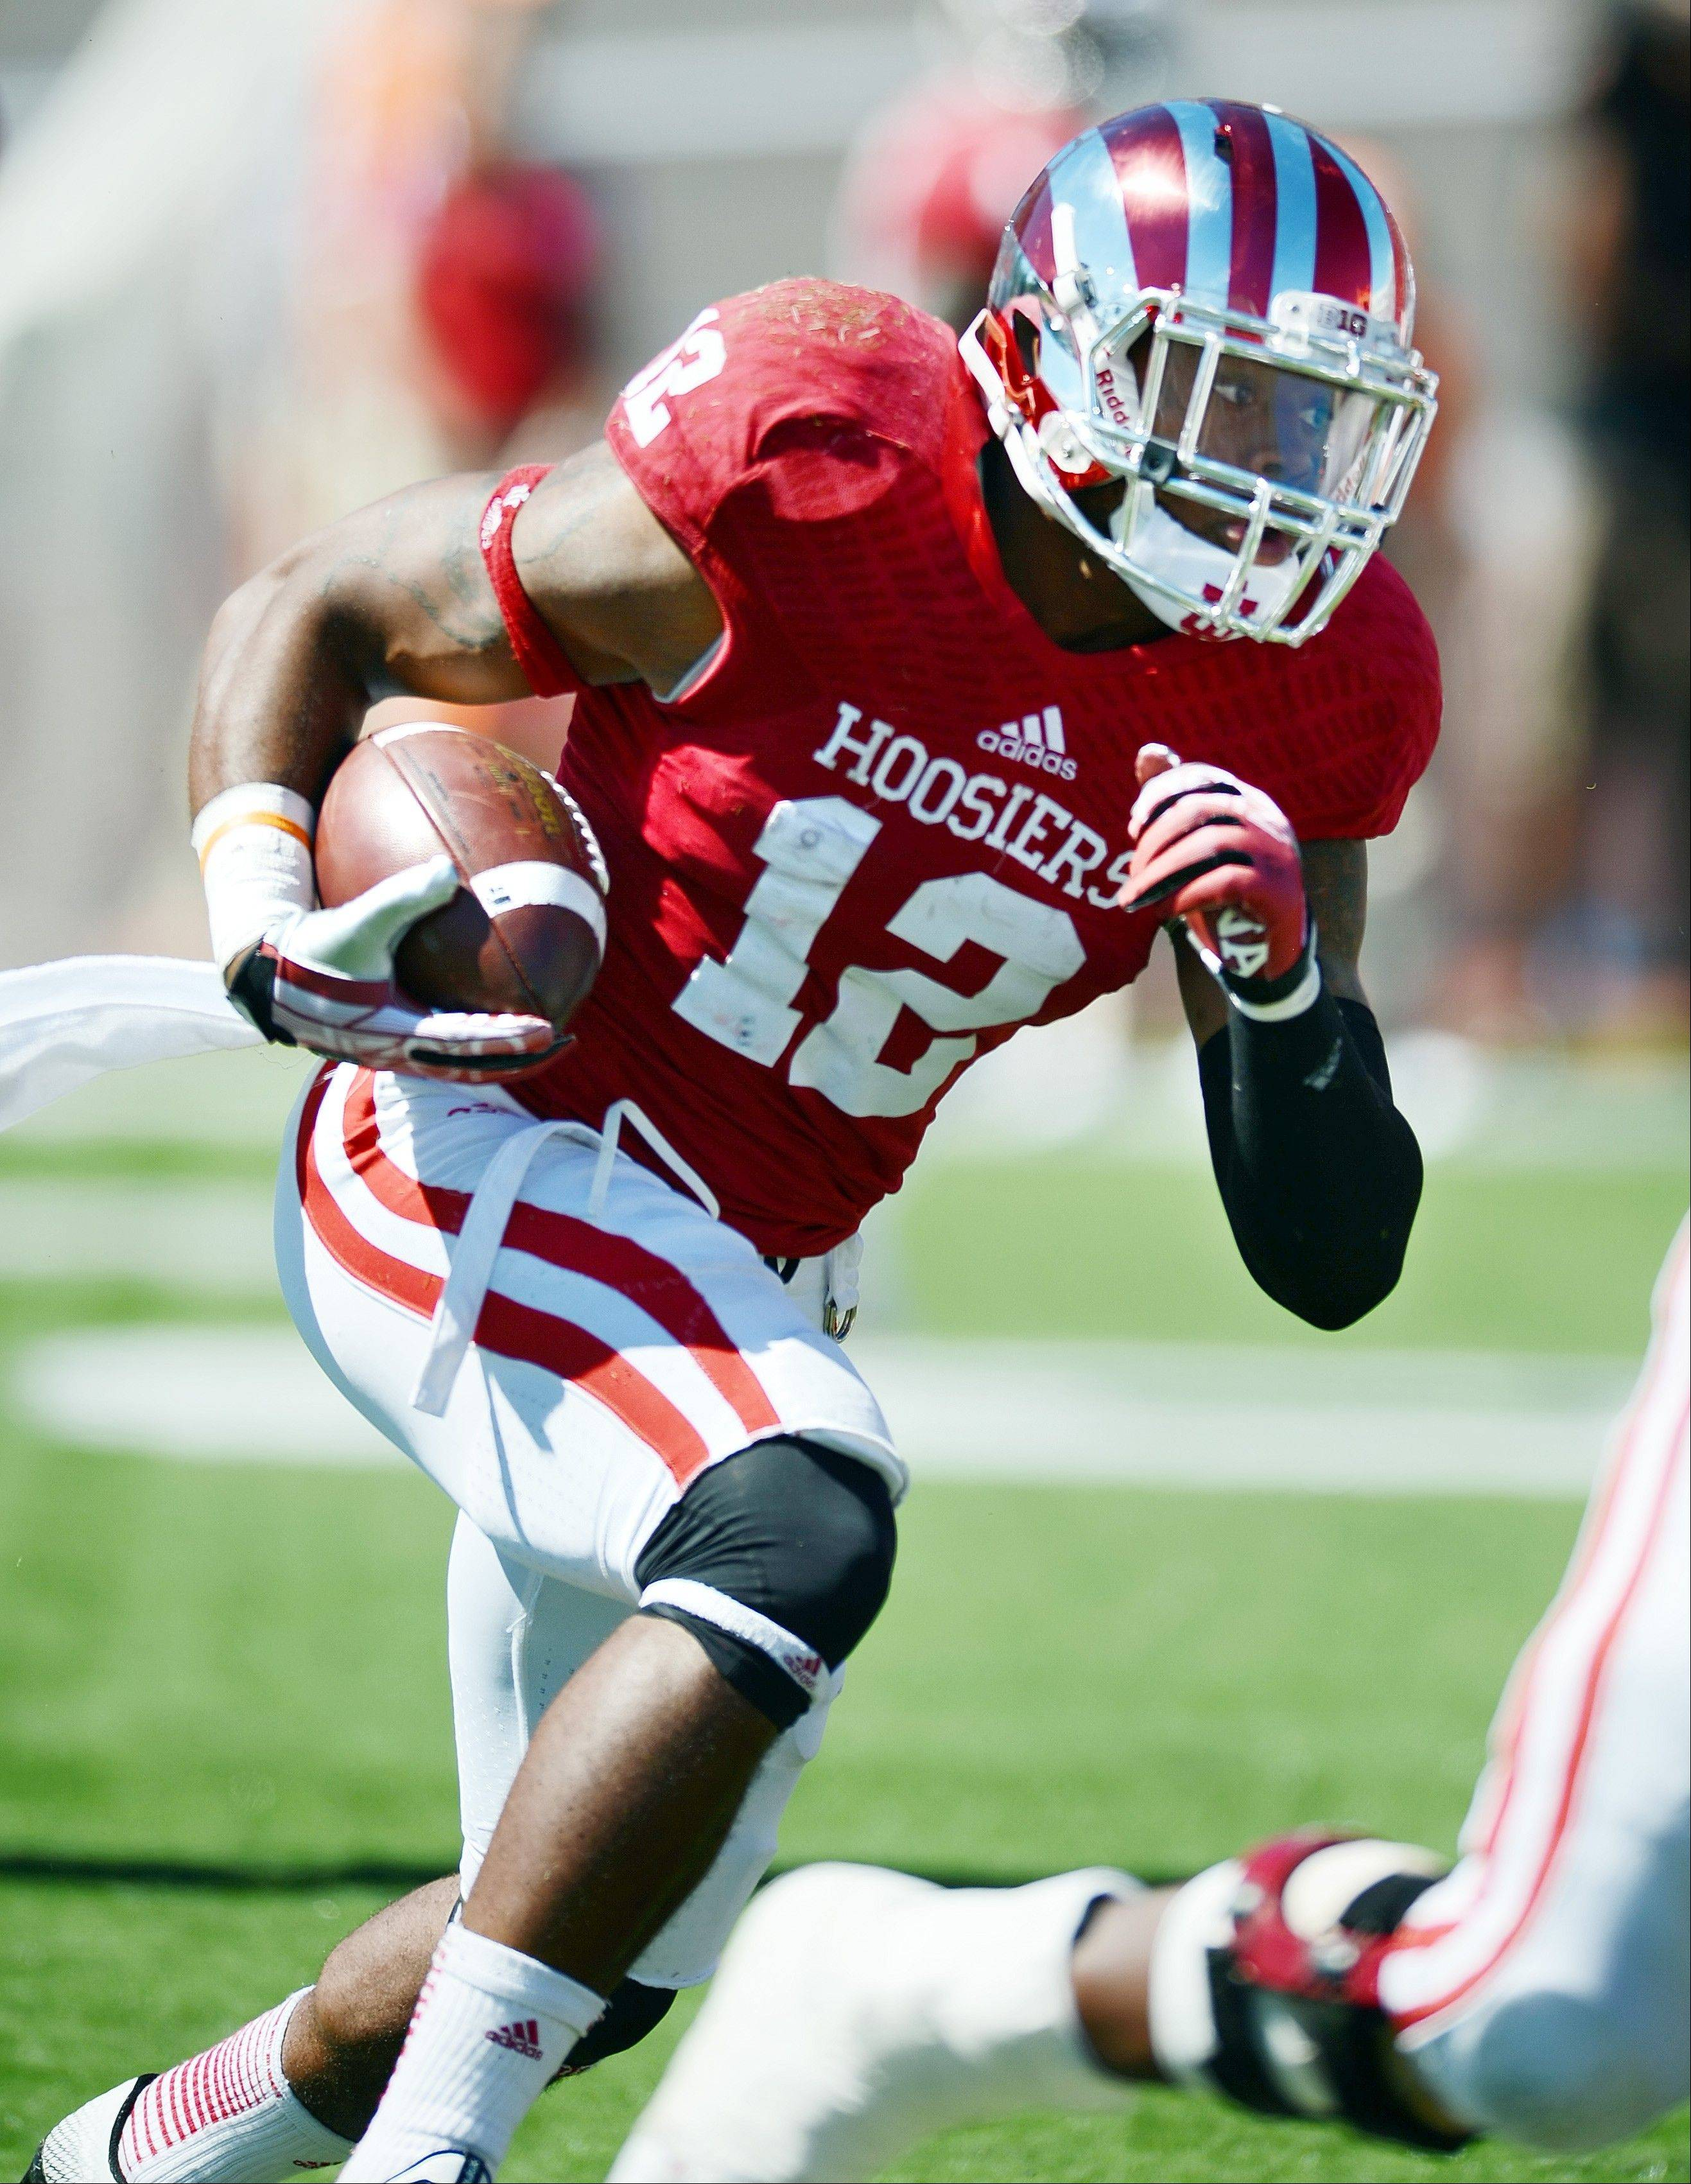 Indiana's Stephen Houston runs against Bowling Green during last weekend's game in Bloomington, Ind. The Hoosiers average 50.0 points per game.